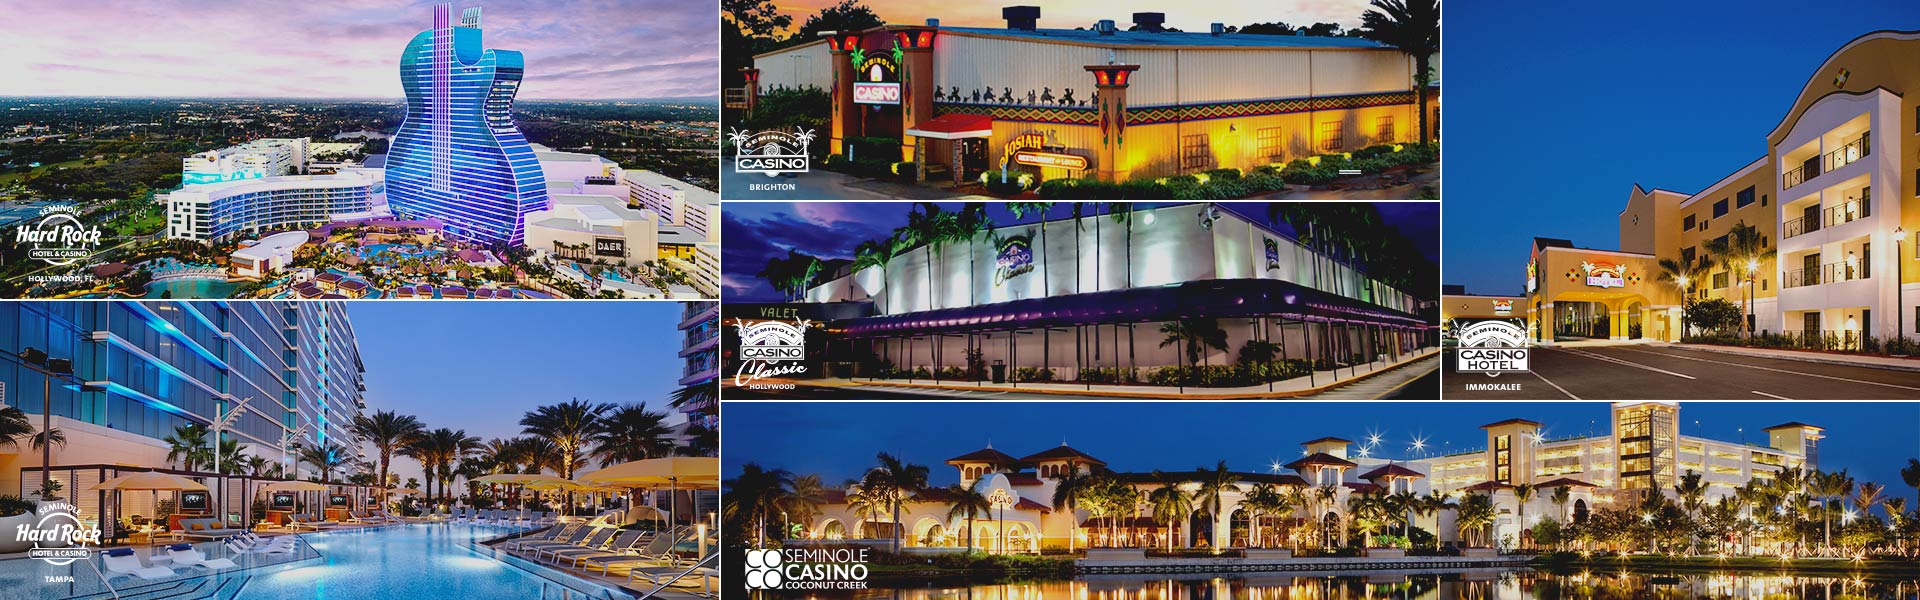 Seminole Casinos.